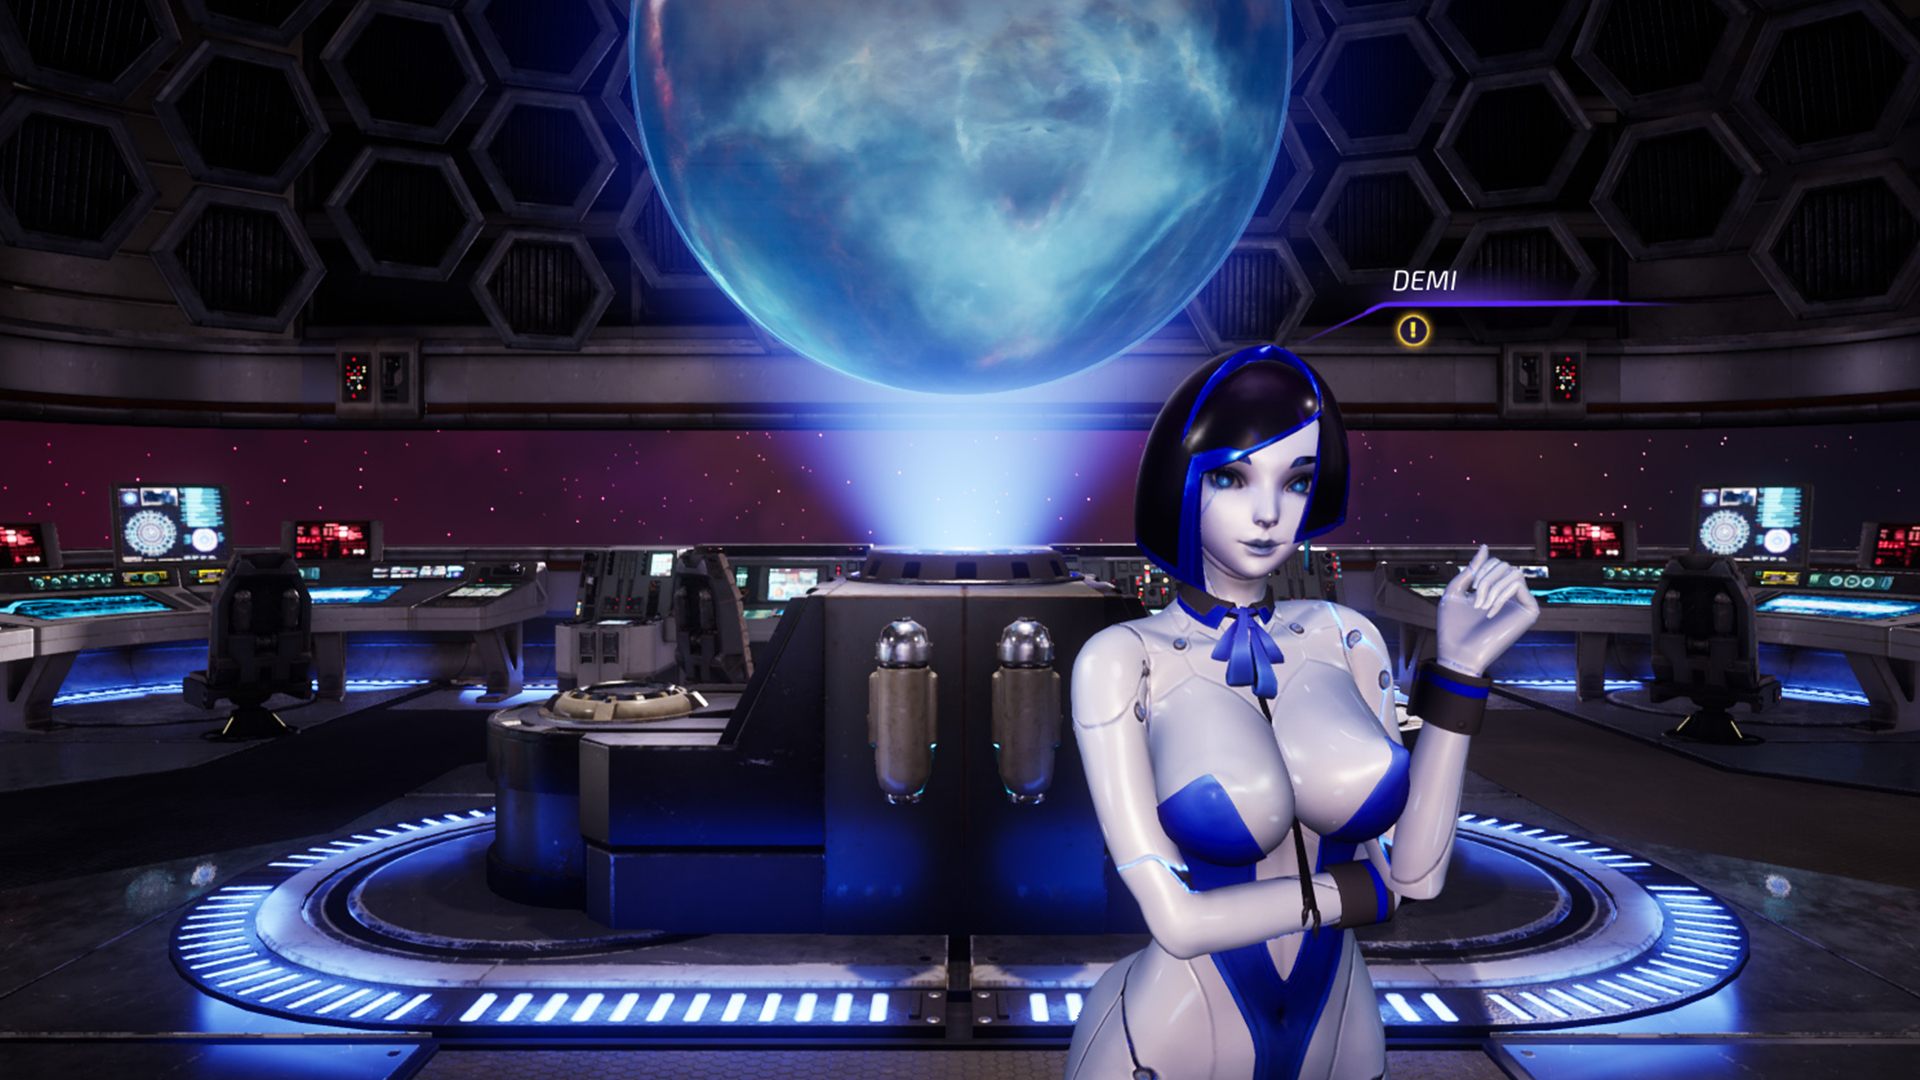 A Kickstarter for a game that's basically hentai Mass Effect has raised over a million dollars | PC Gamer